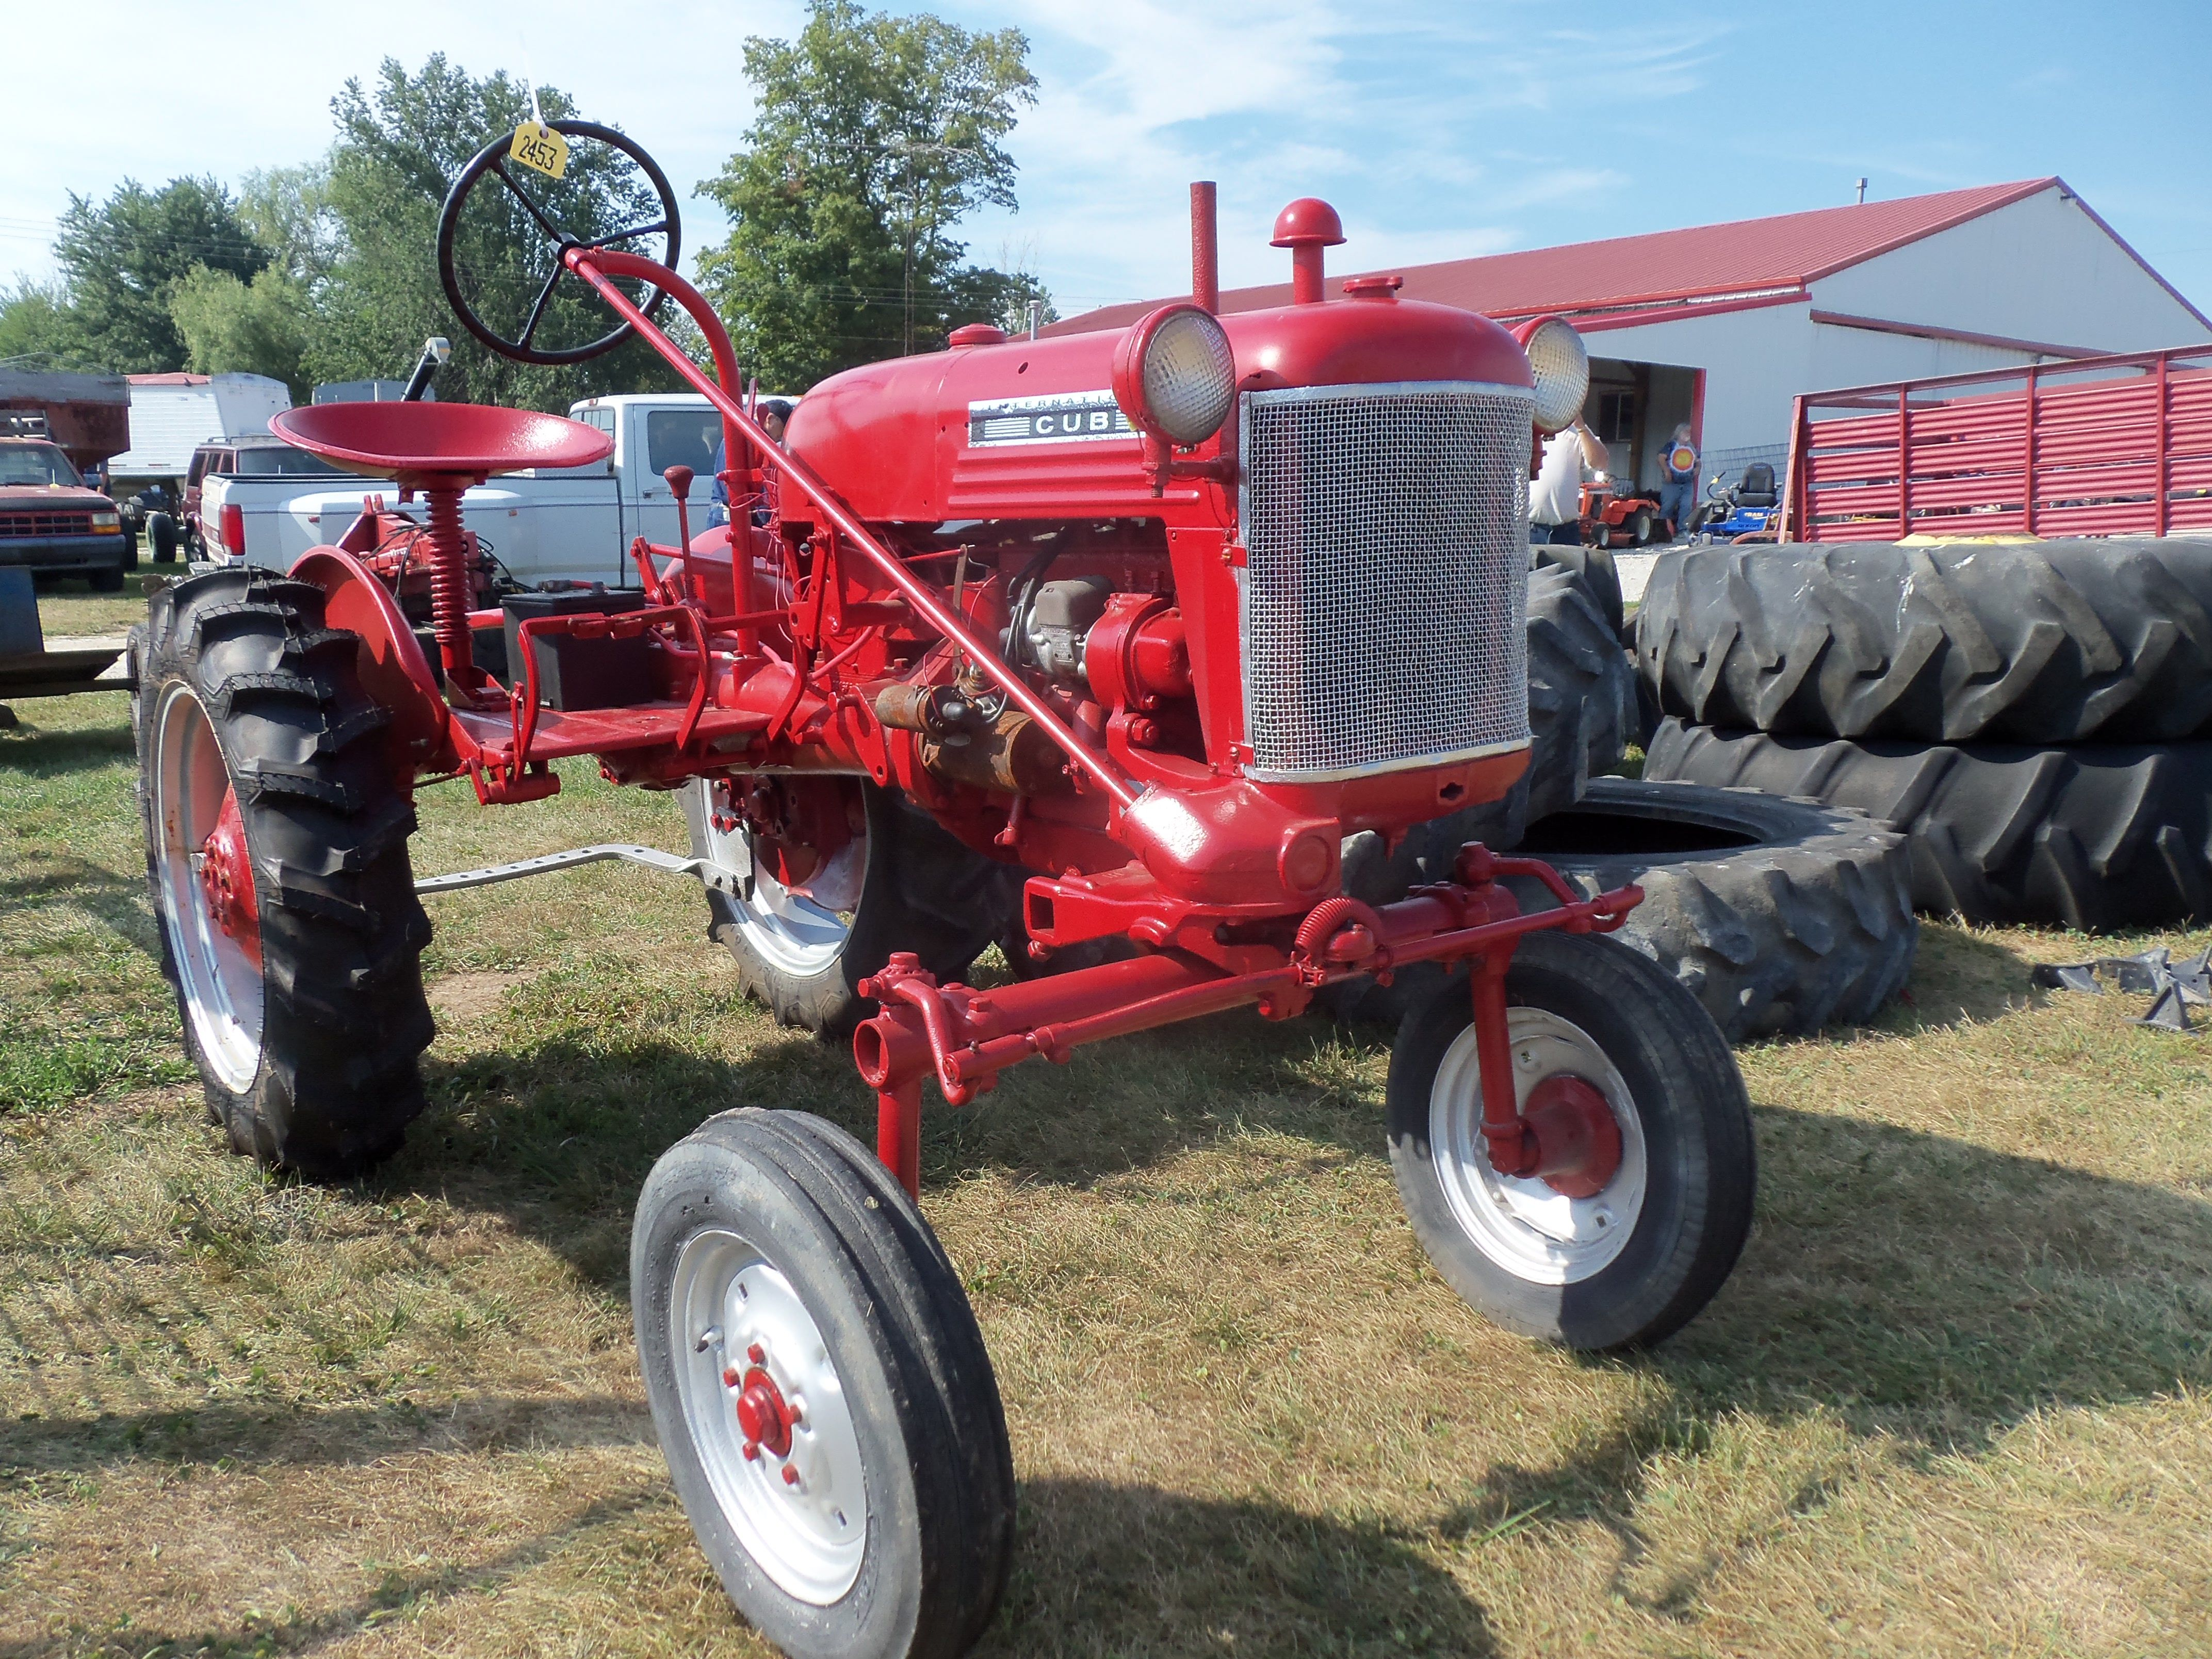 1949 farmall cub tractor with implements tractor parts